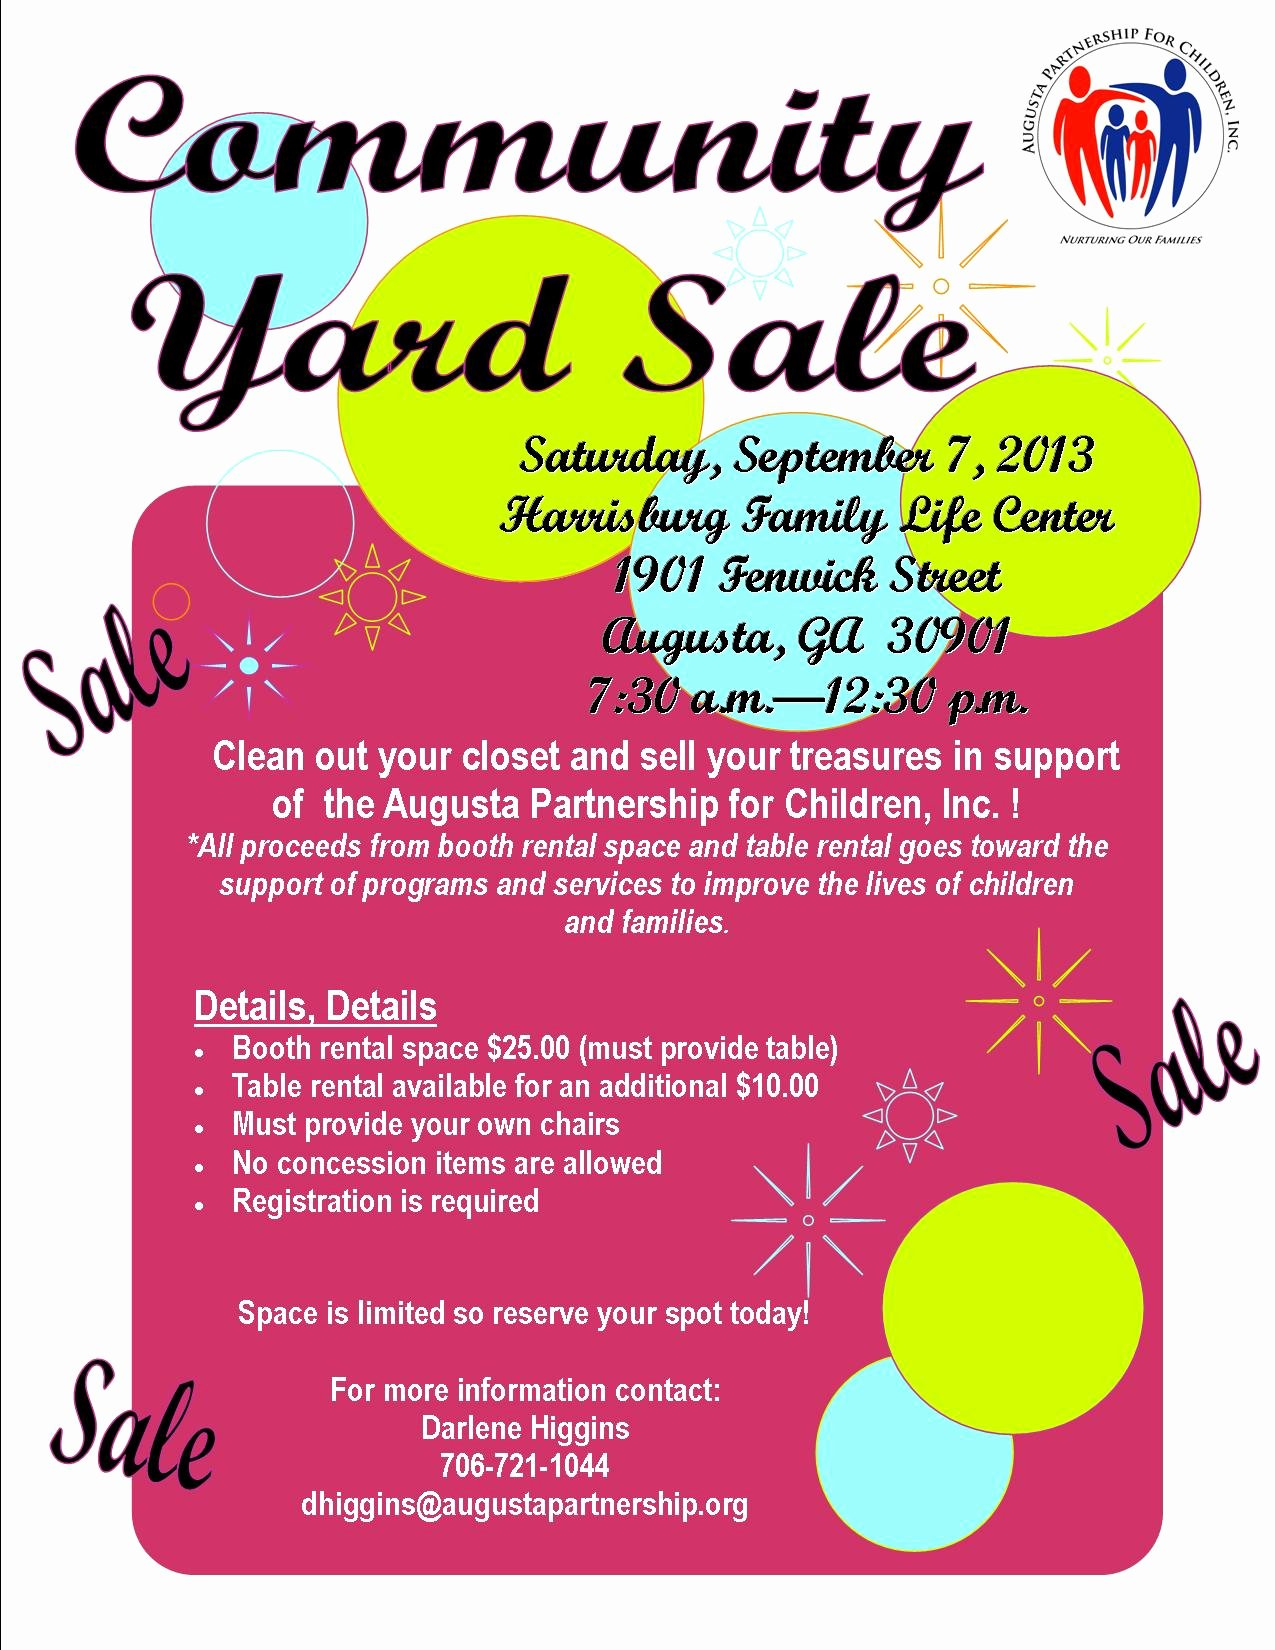 Sales Flyer Template Word Luxury Up Ing events Munity Yard Sale